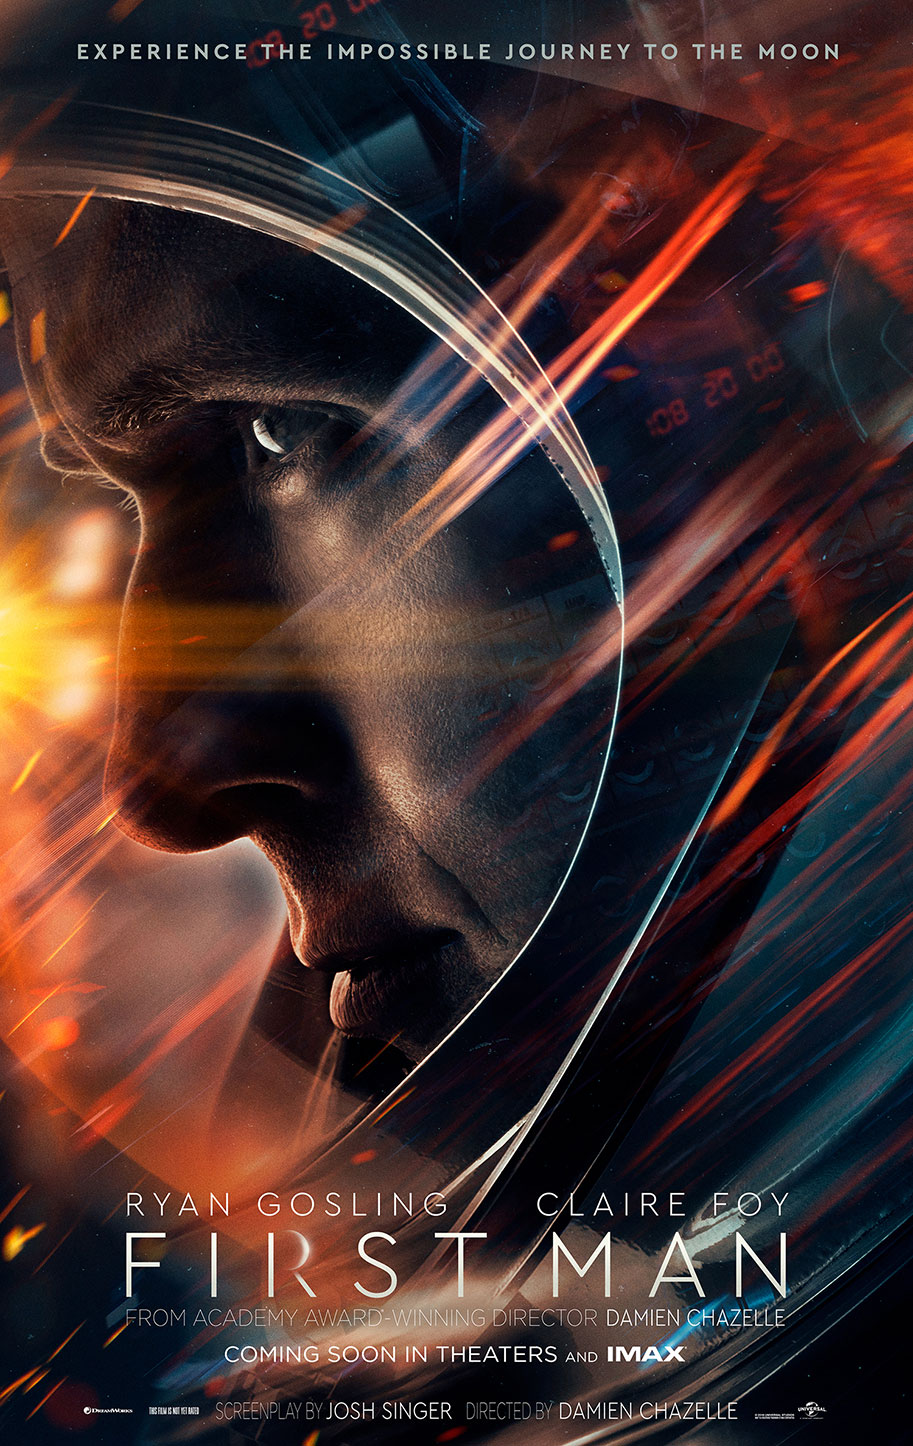 One Sheet poster for FIRST MAN, starring Ryan Gosling